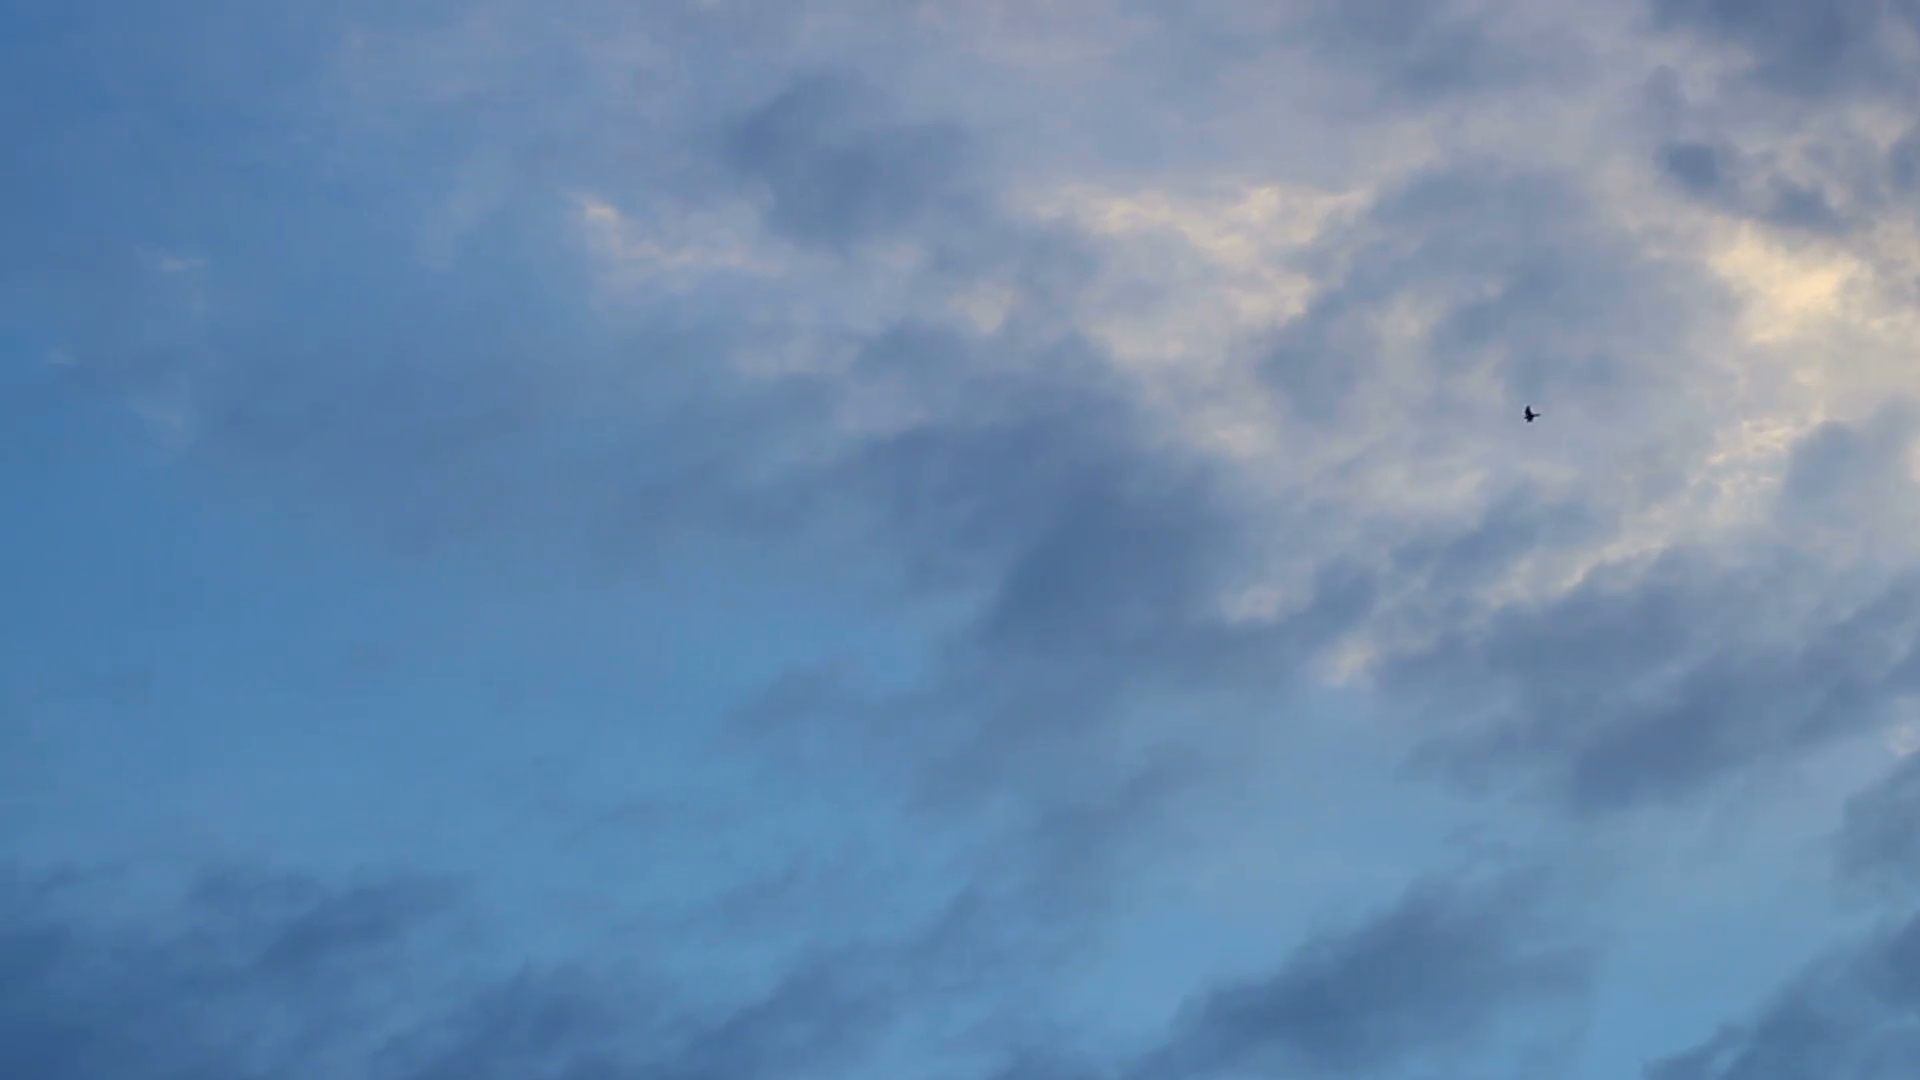 Cloudy Sky Background PNG - 159272